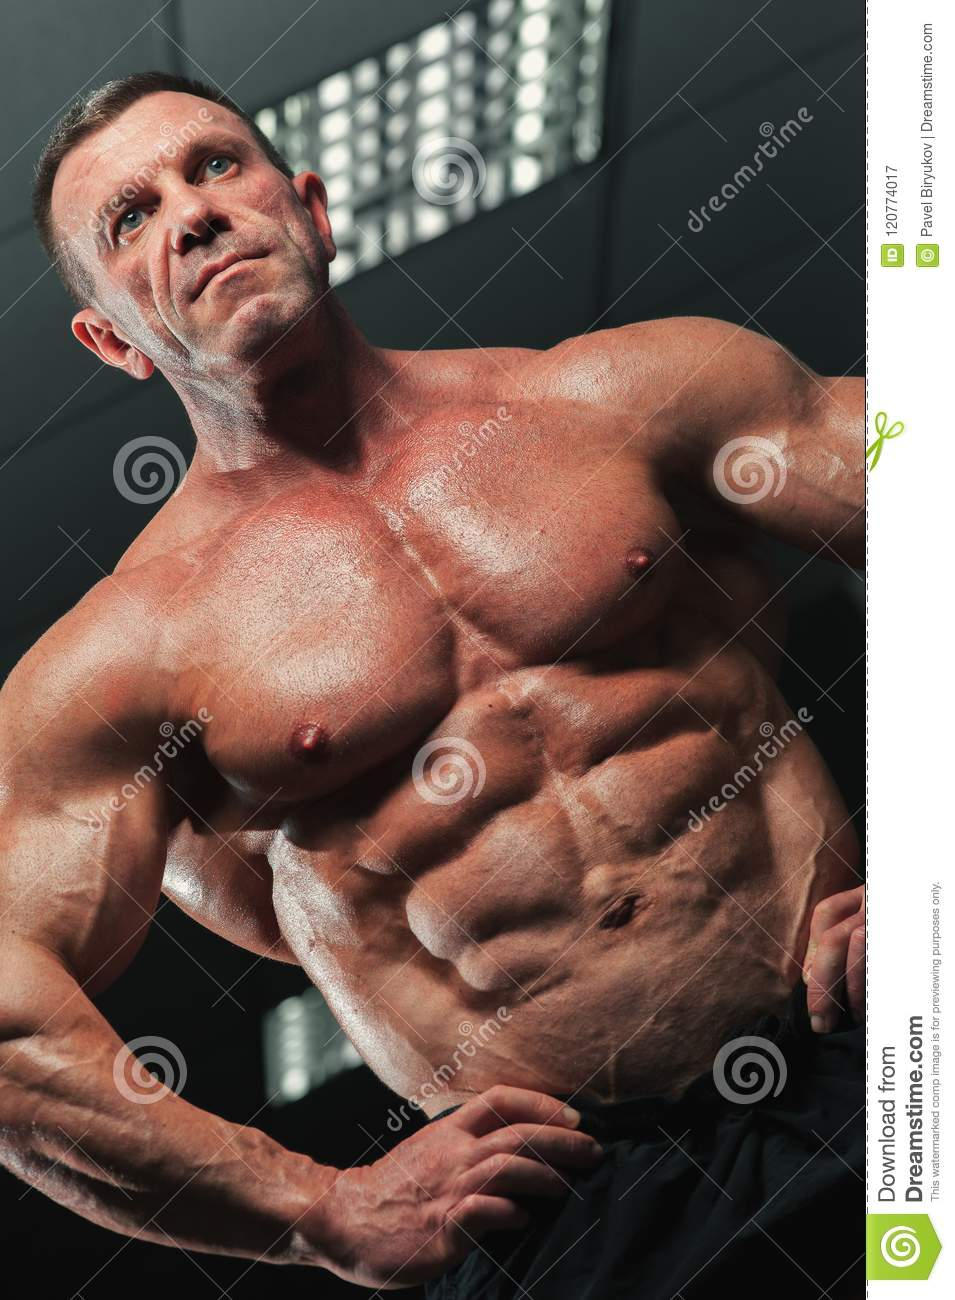 Shall simply mature bodybuilder men message